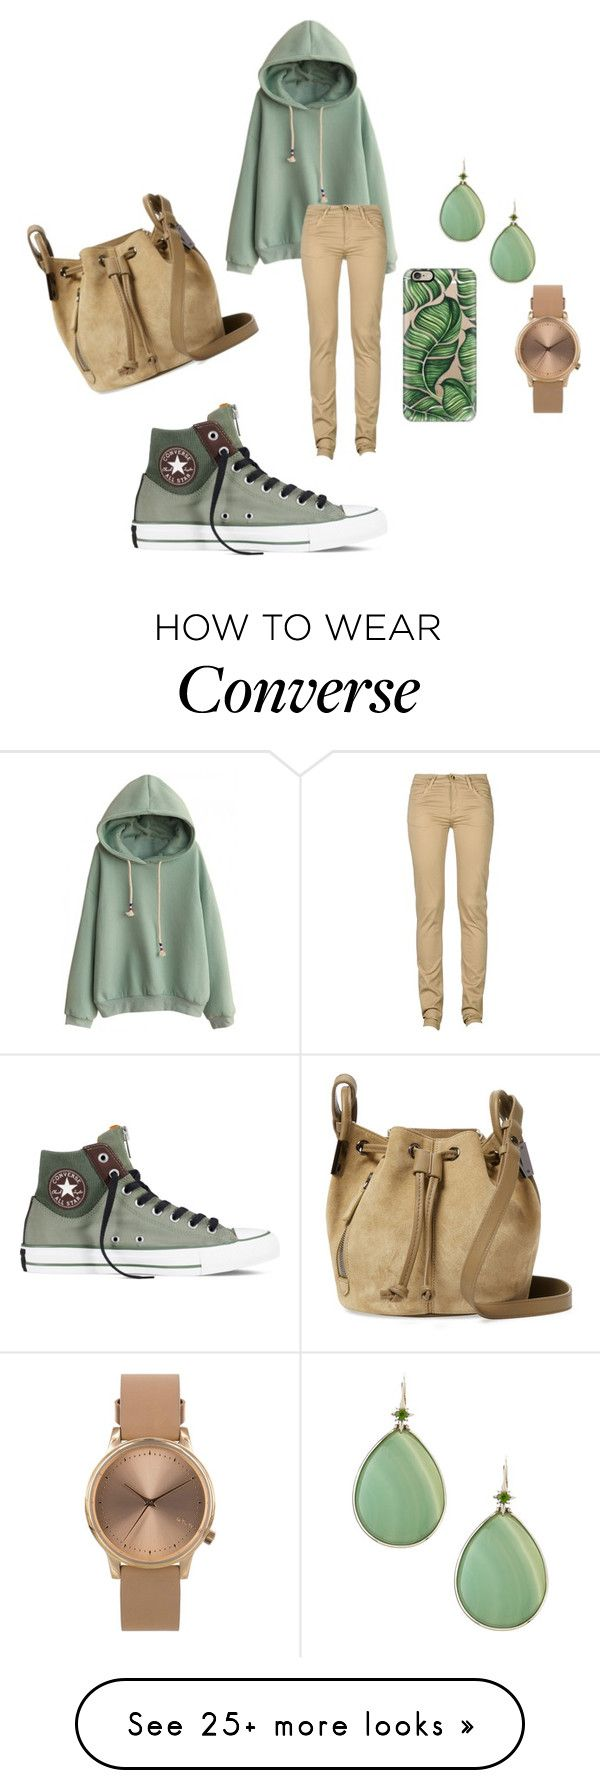 """cnverse cute nice hoodie"" by noexes on Polyvore featuring мода, Monkee Genes, Converse, Time's Arrow, Casetify, Stephen Dweck и Topshop"